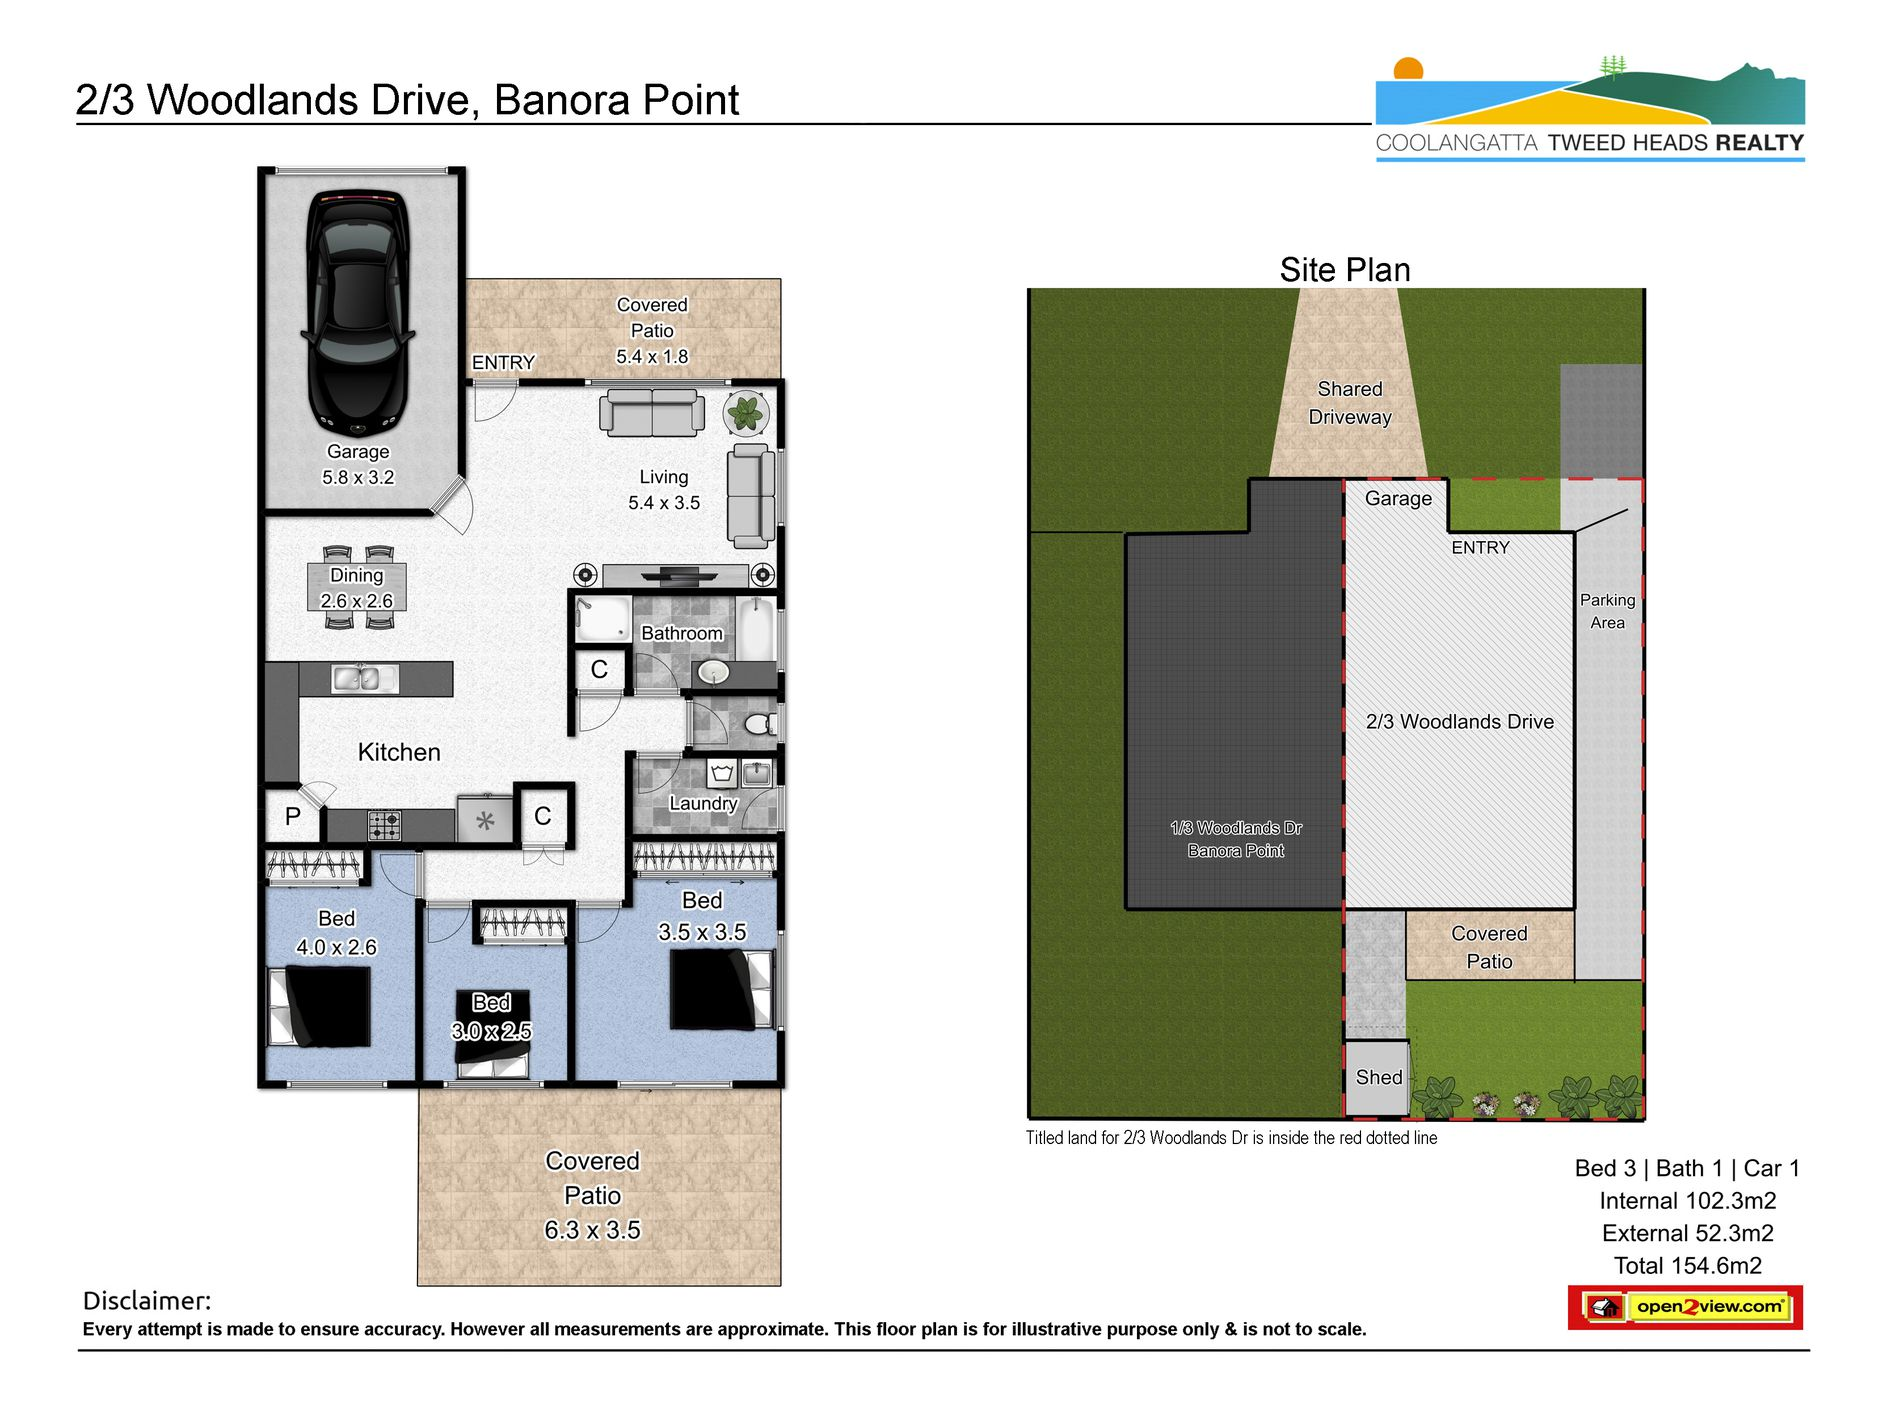 2 / 3 Woodlands Drive, Banora Point